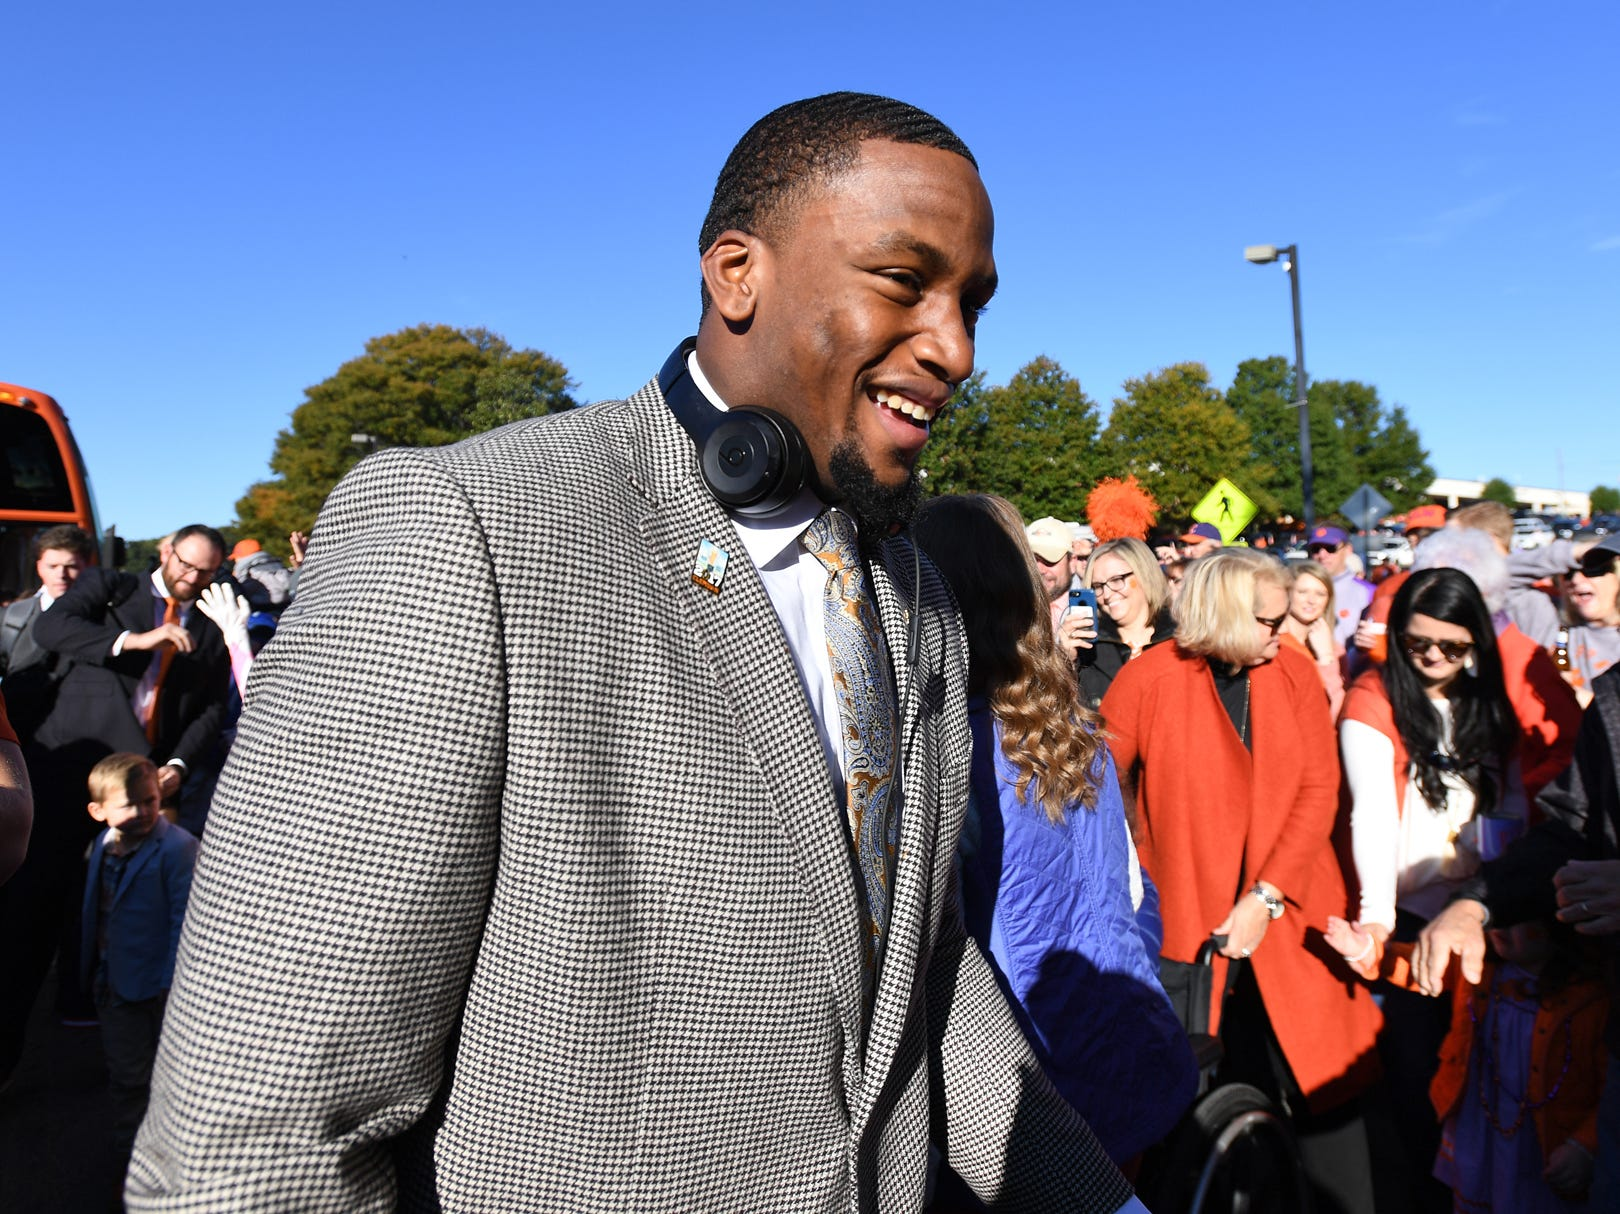 Clemson defensive lineman Clelin Ferrell takes part in Tiger Walk before the Tiger's game against Louisville Saturday, November 3, 2018 at Clemson's Memorial Stadium.